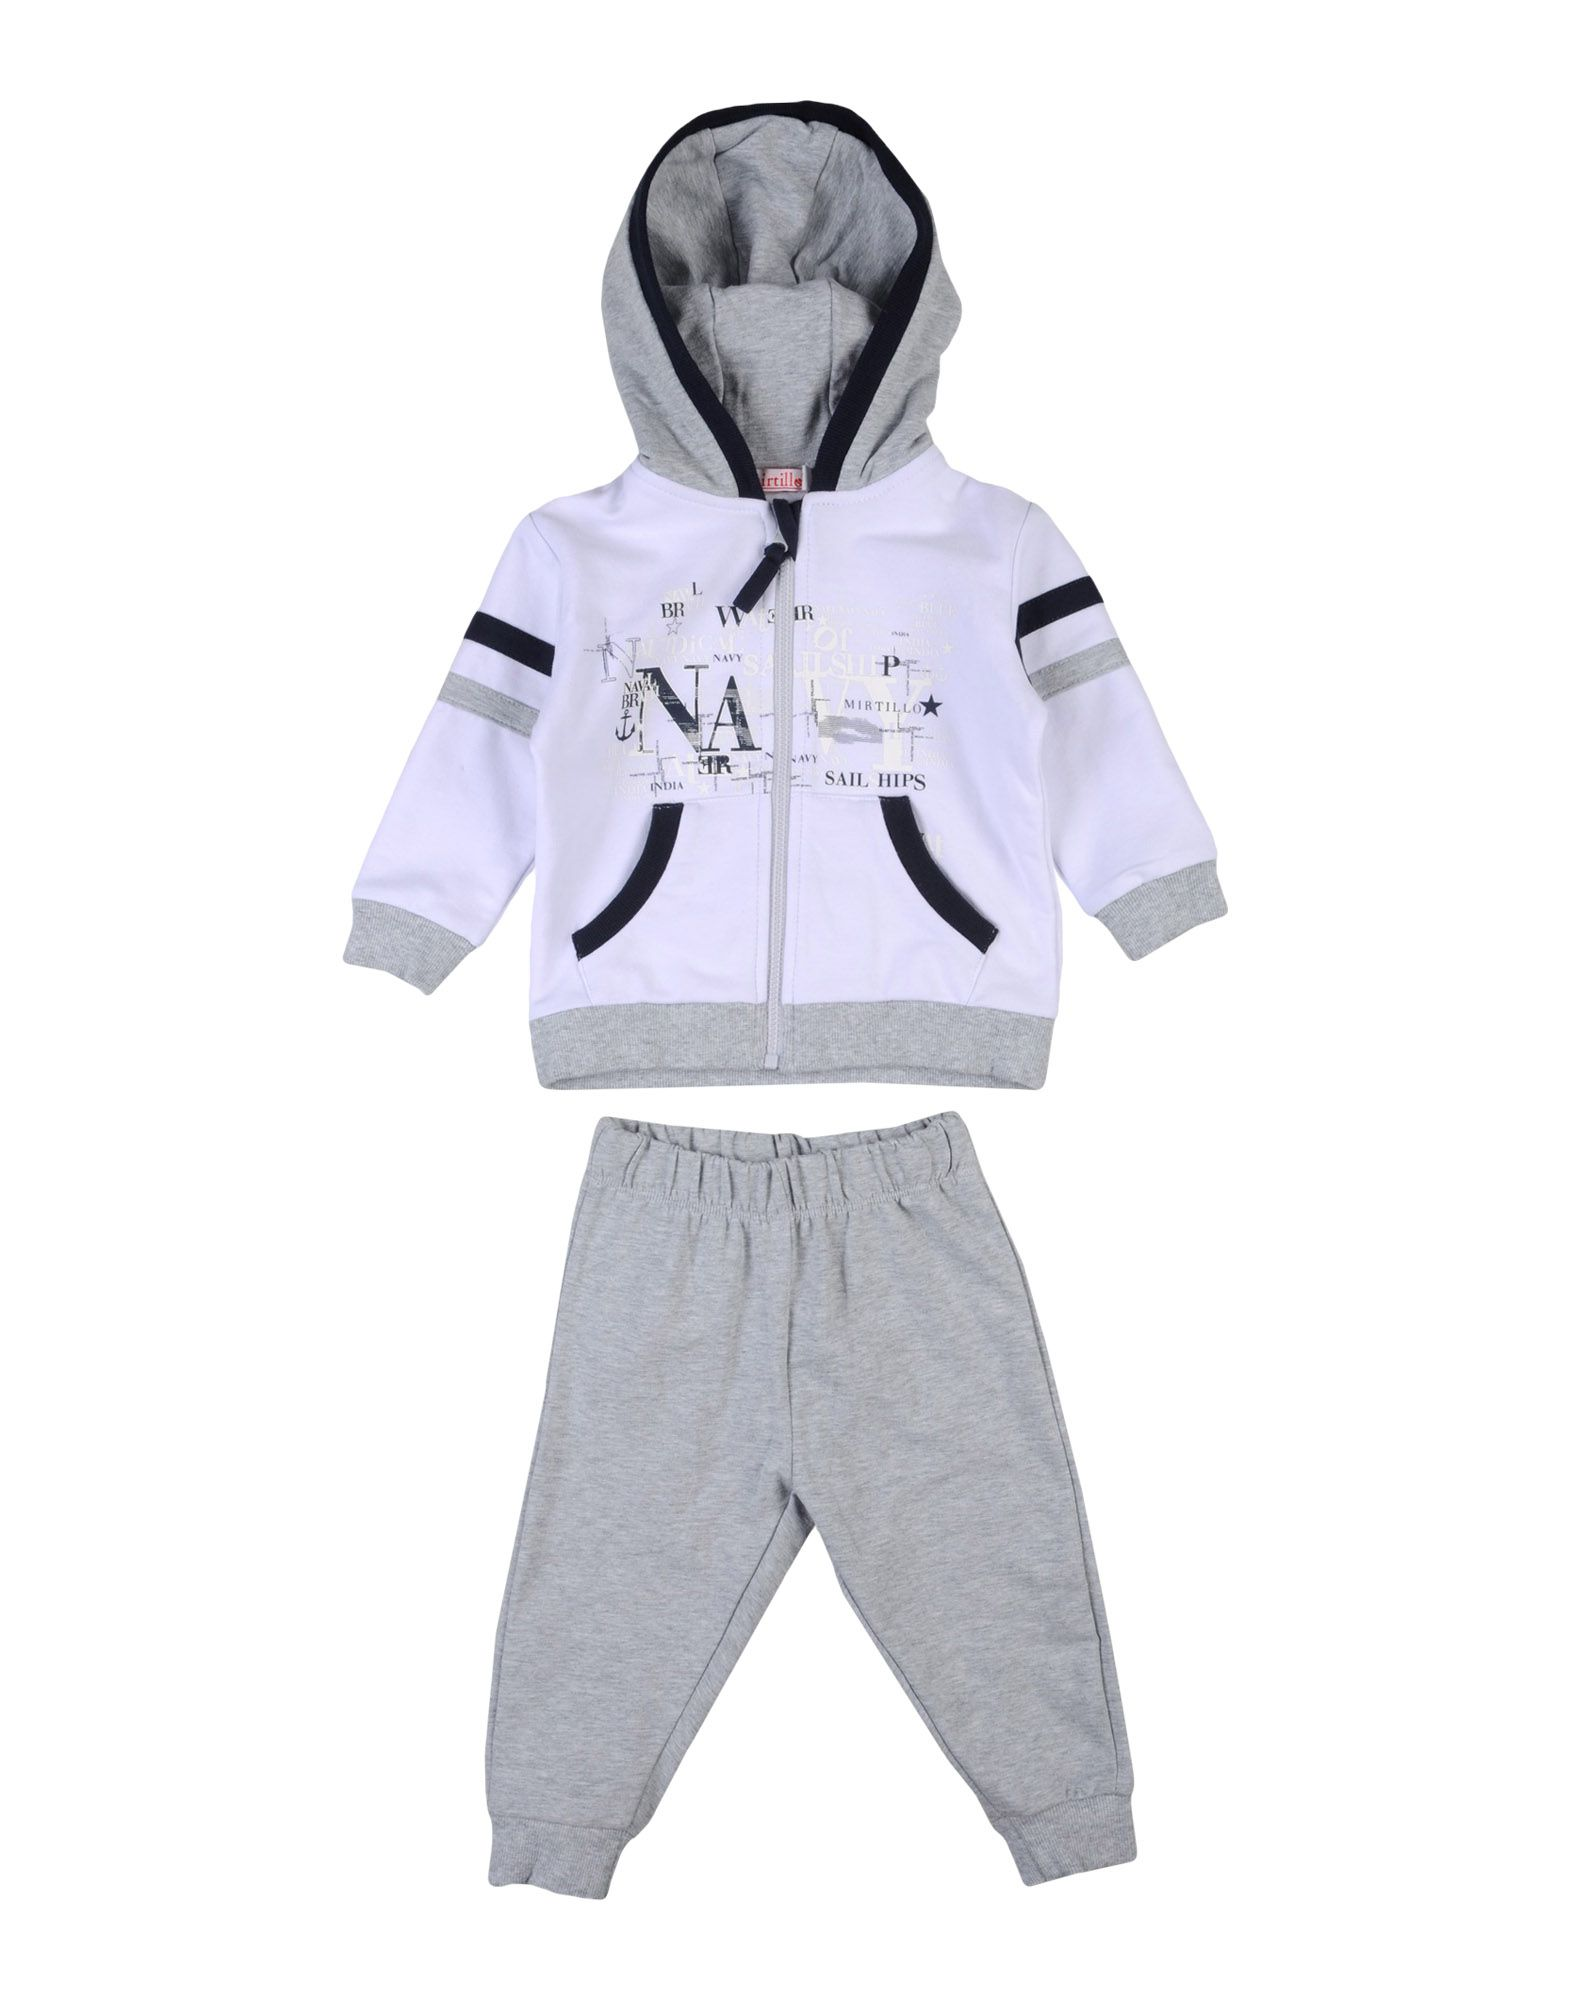 MIRTILLO Baby sweatsuits